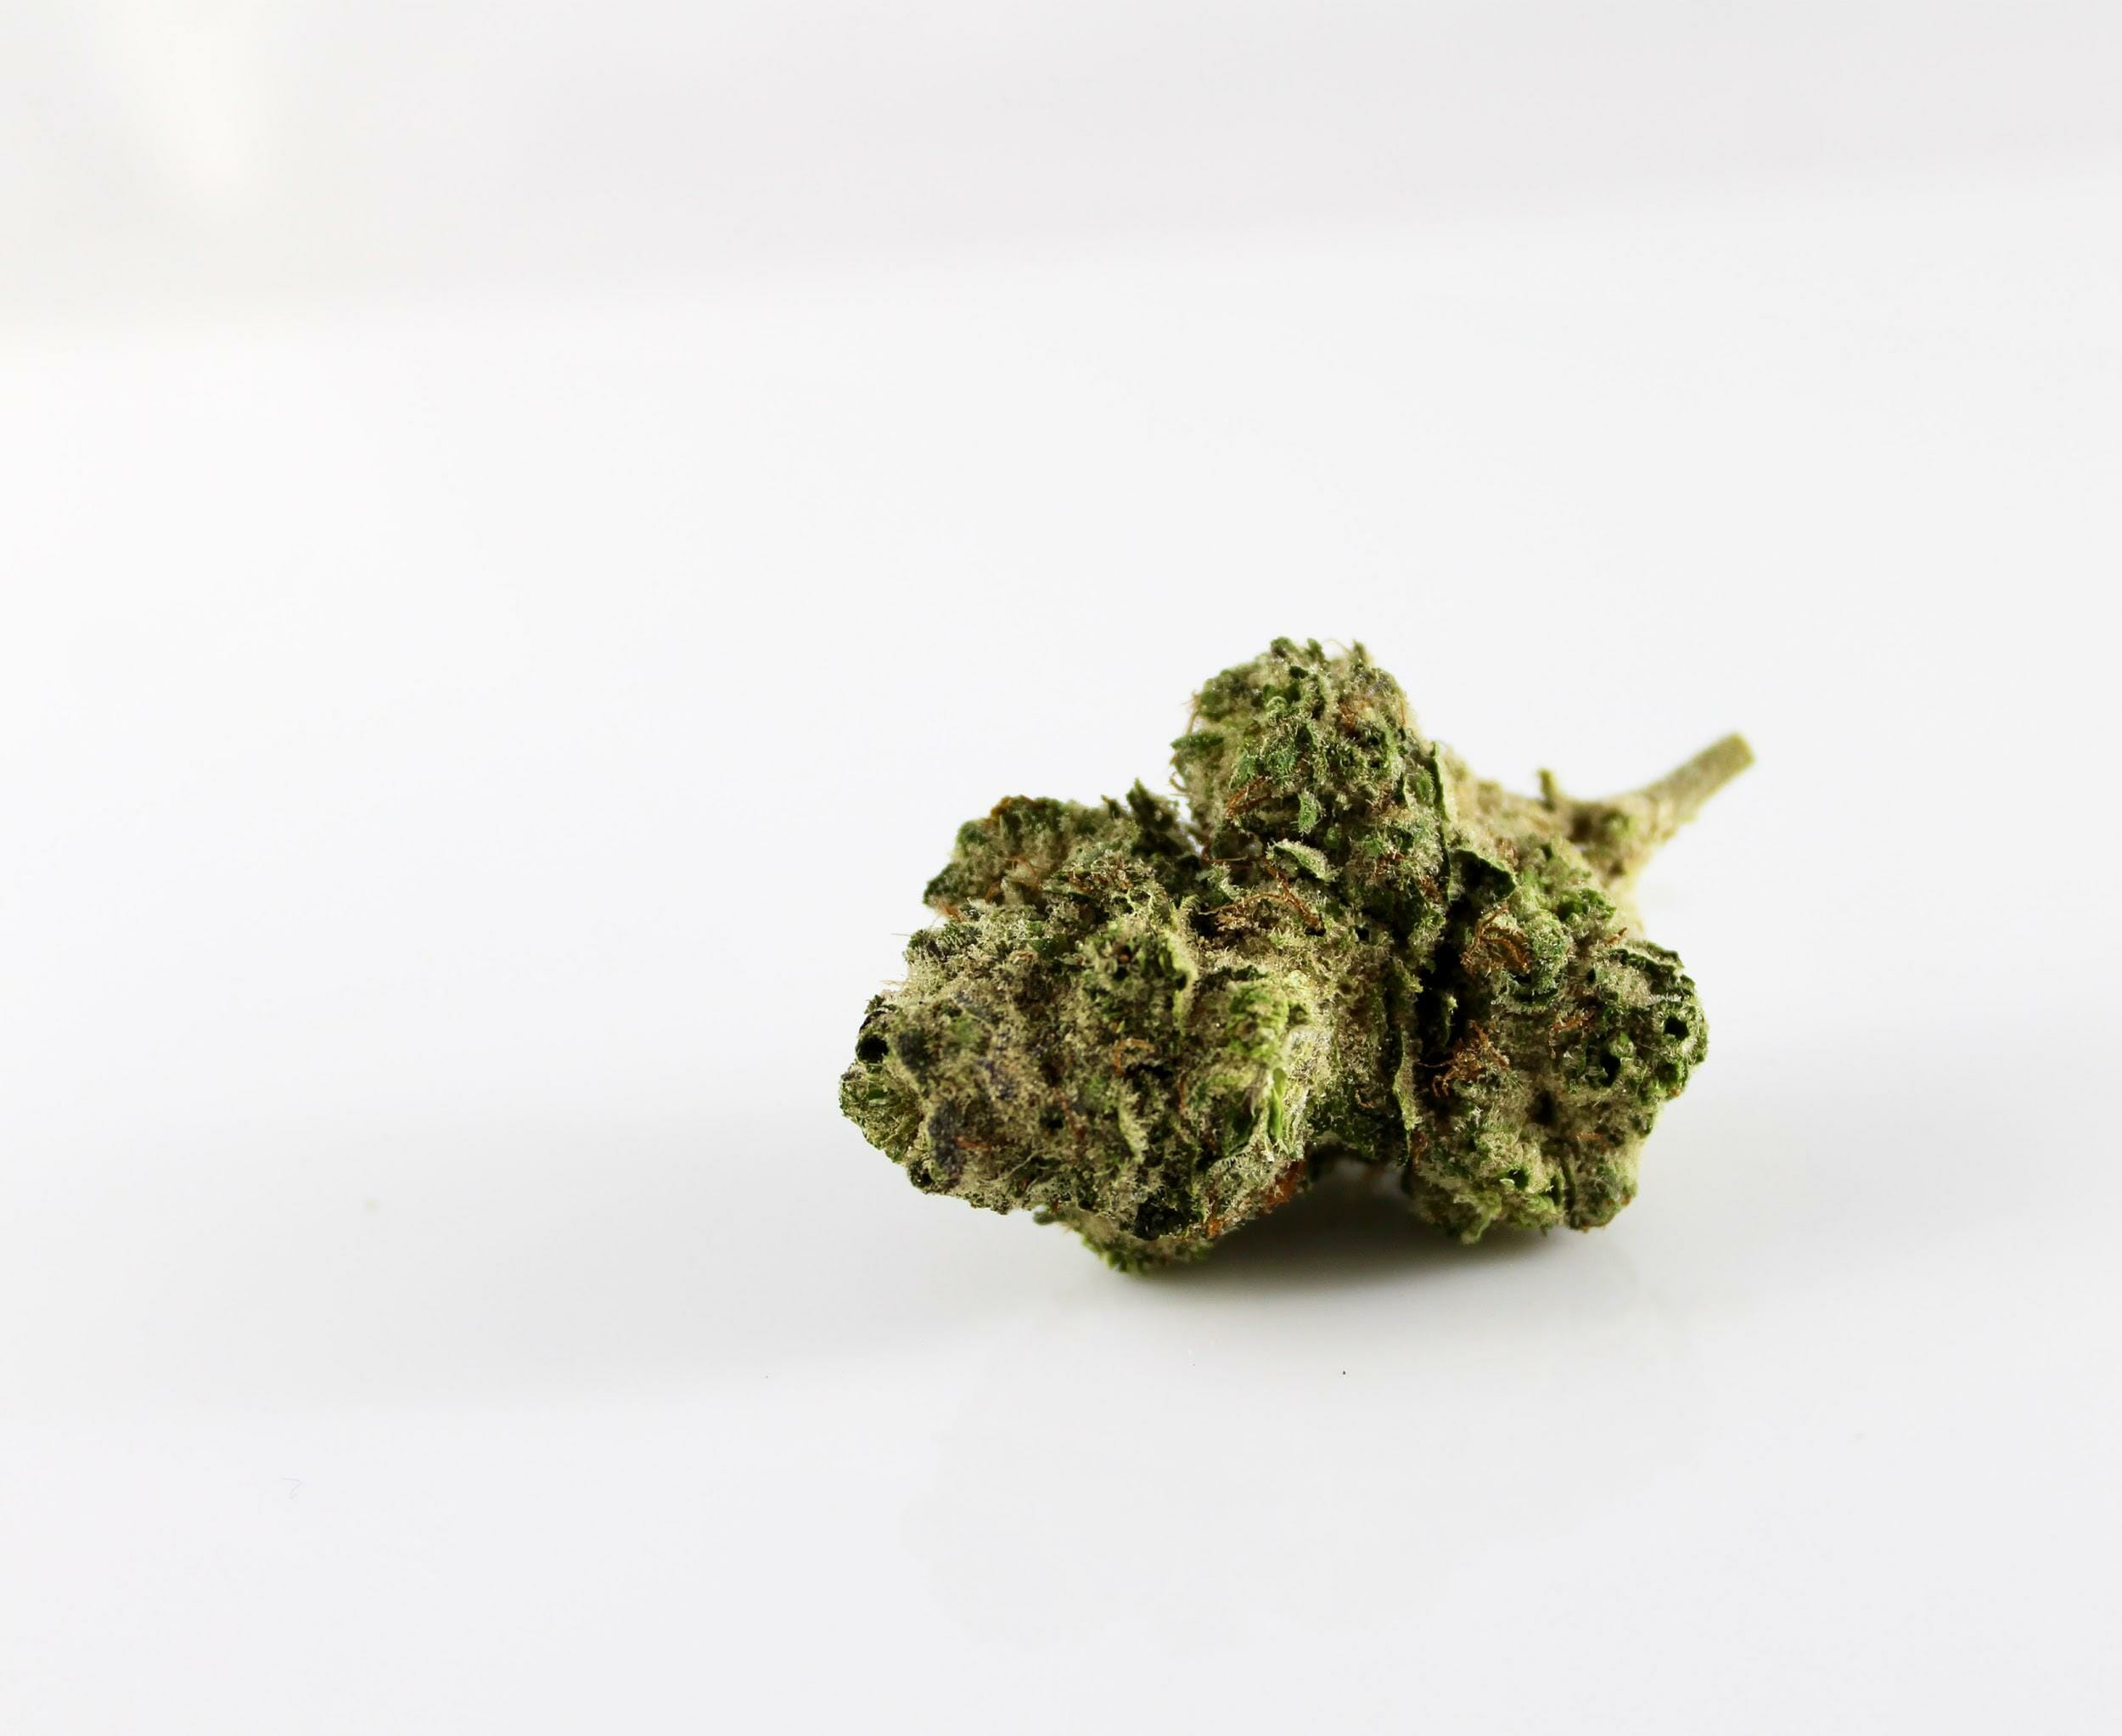 Best Cannabis Strains To Try While In Quarantine 2